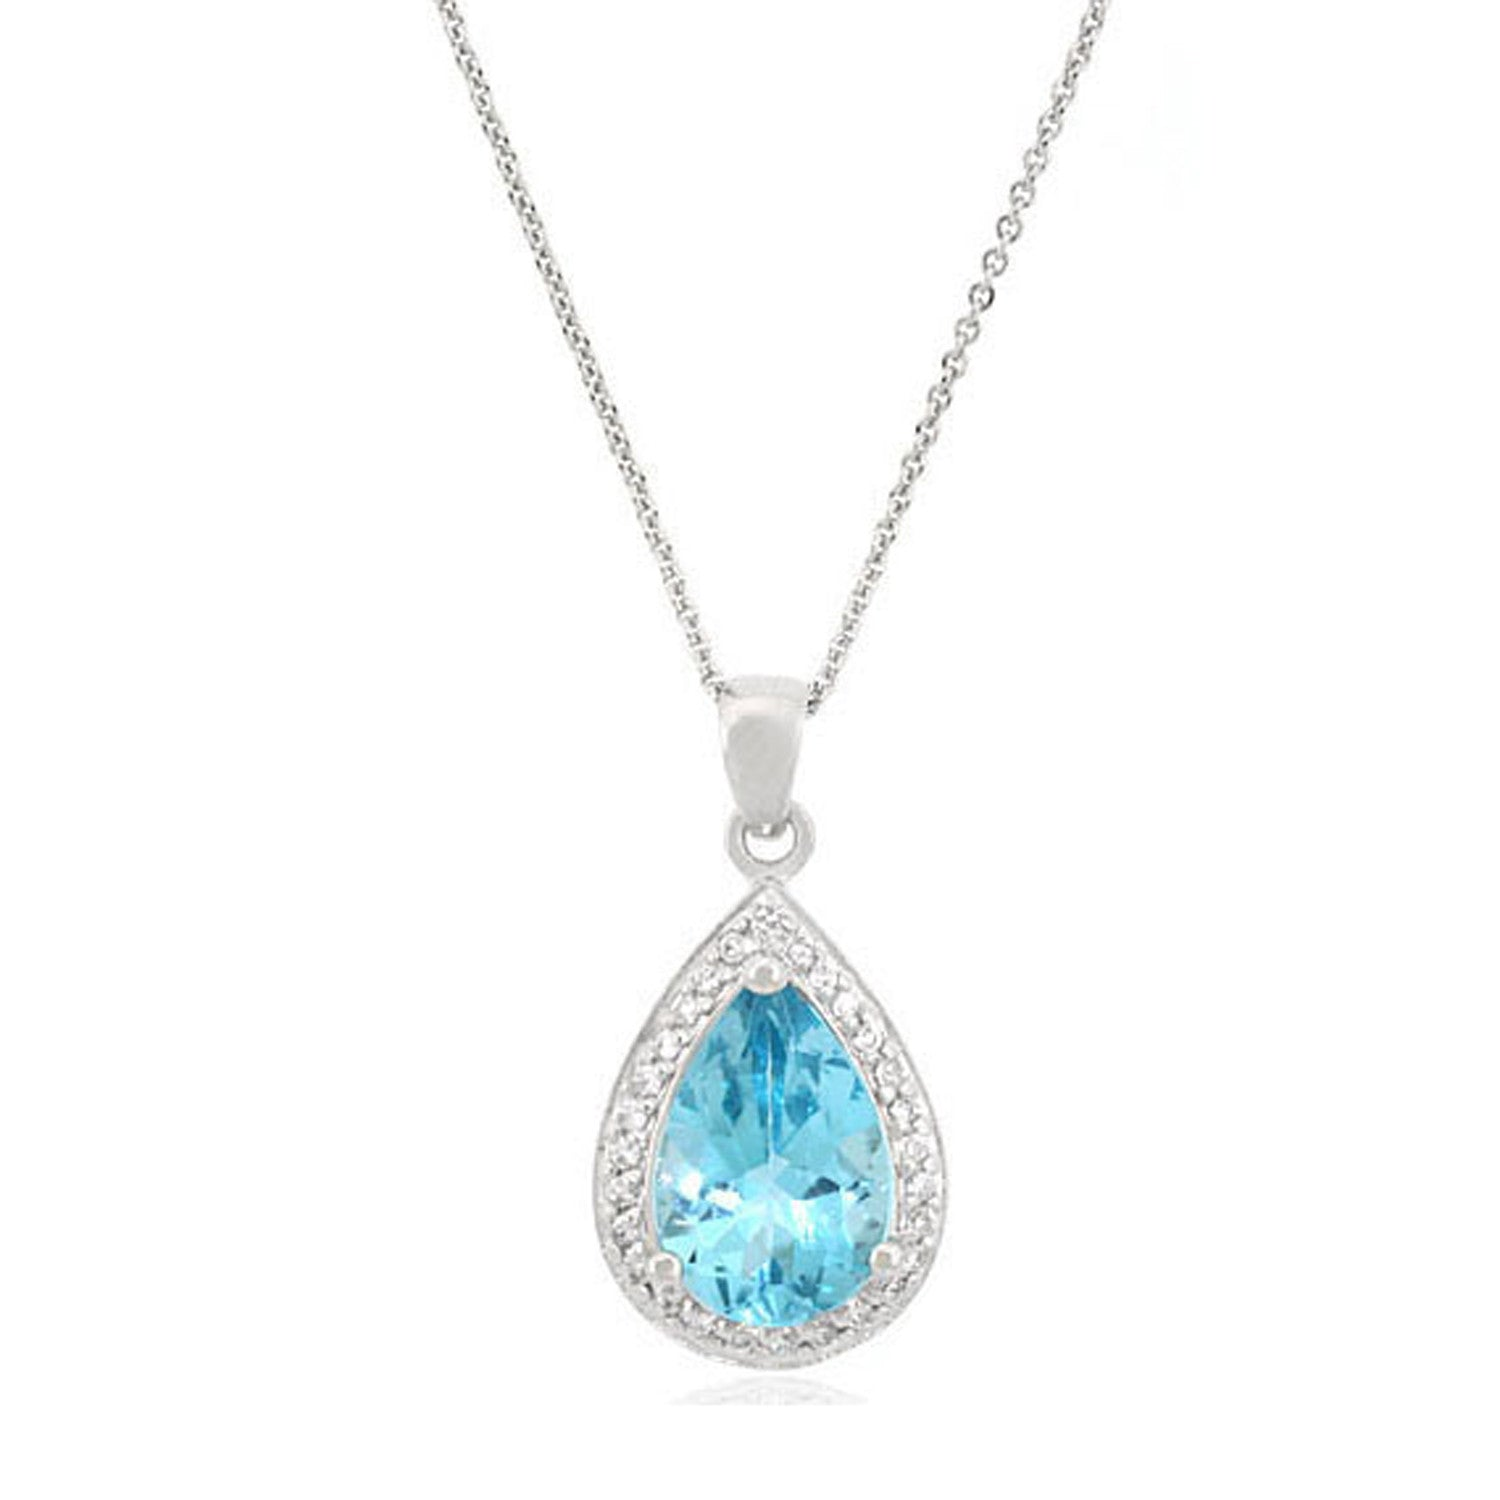 Teardrop Necklace With Cubic Zirconia & Gemstone Accents - Silver / Blue Topaz